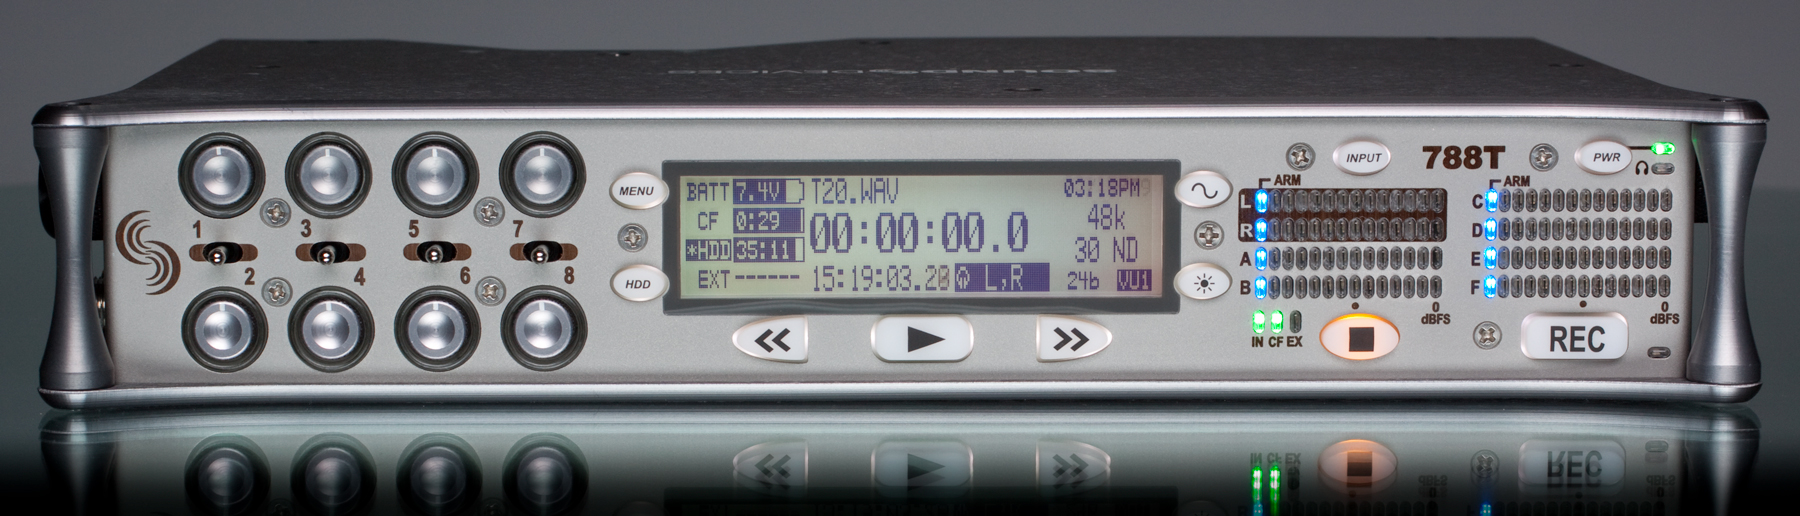 sound-devices-788t-ssd